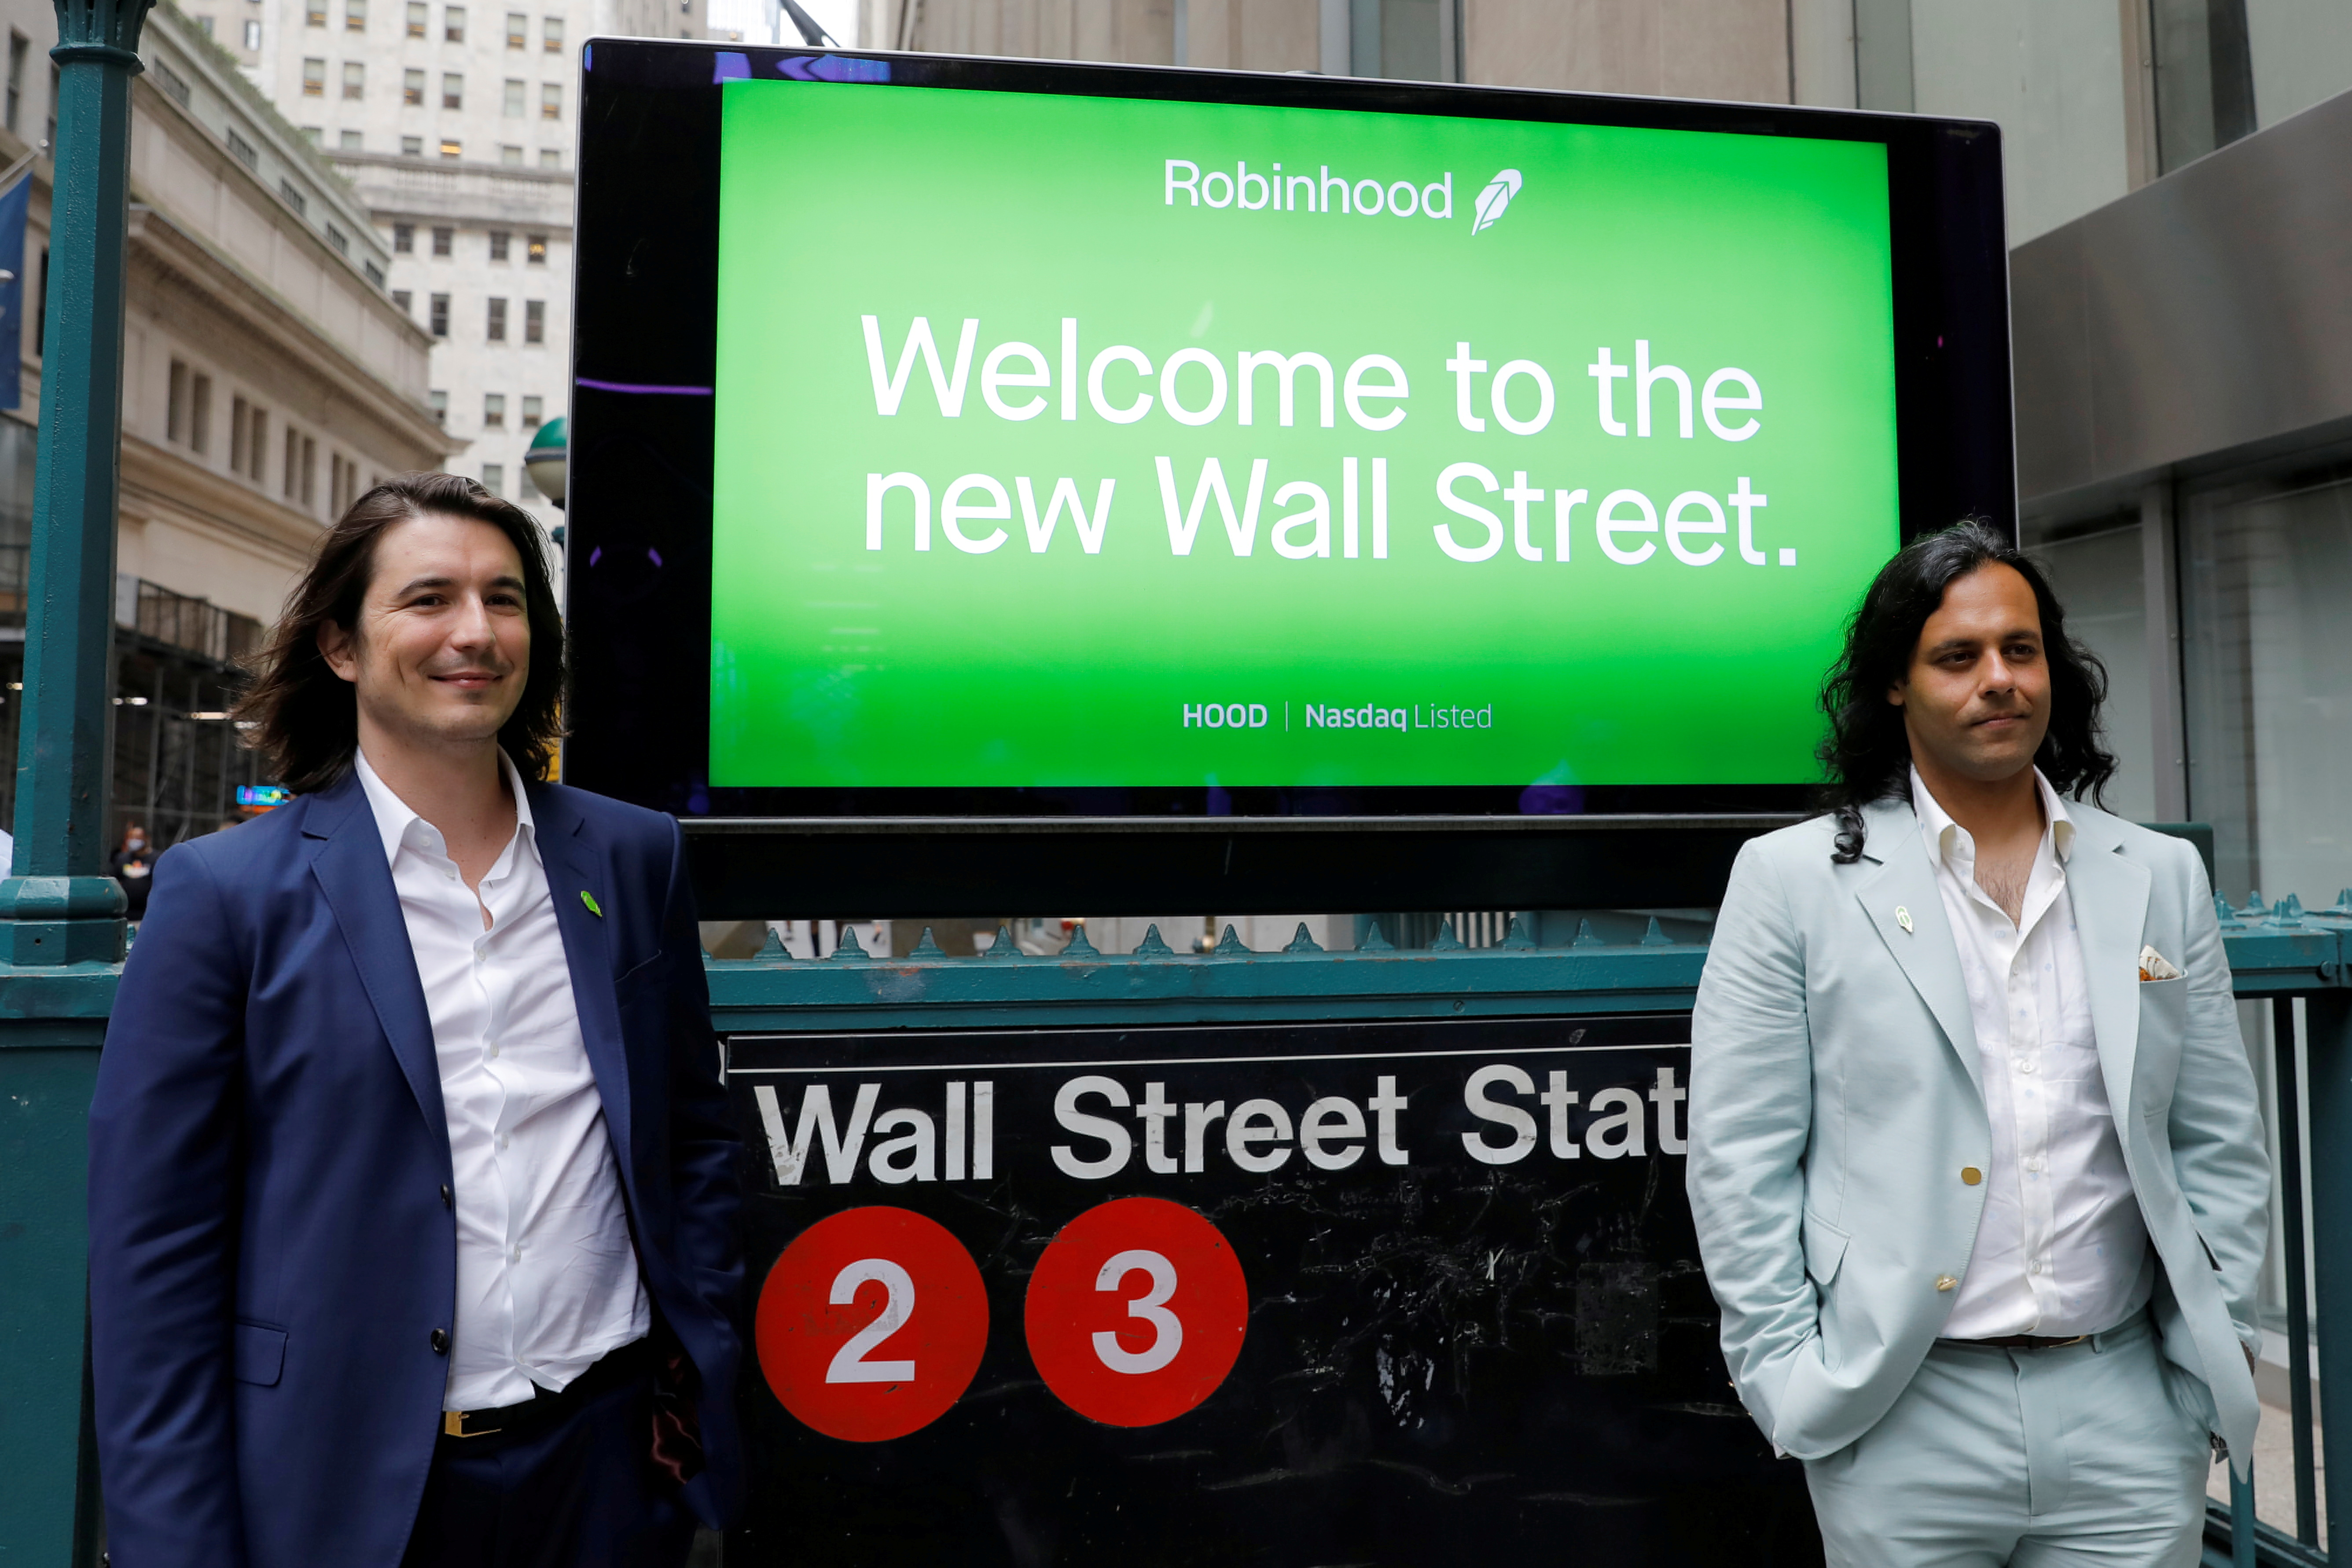 Robinhood Markets, Inc. CEO and co-founder Vlad Tenev and co-founder Baiju Bhatt pose with Robinhood signage on Wall Street after the company's IPO in New York City, U.S., July 29, 2021.  REUTERS/Andrew Kelly/File Photo